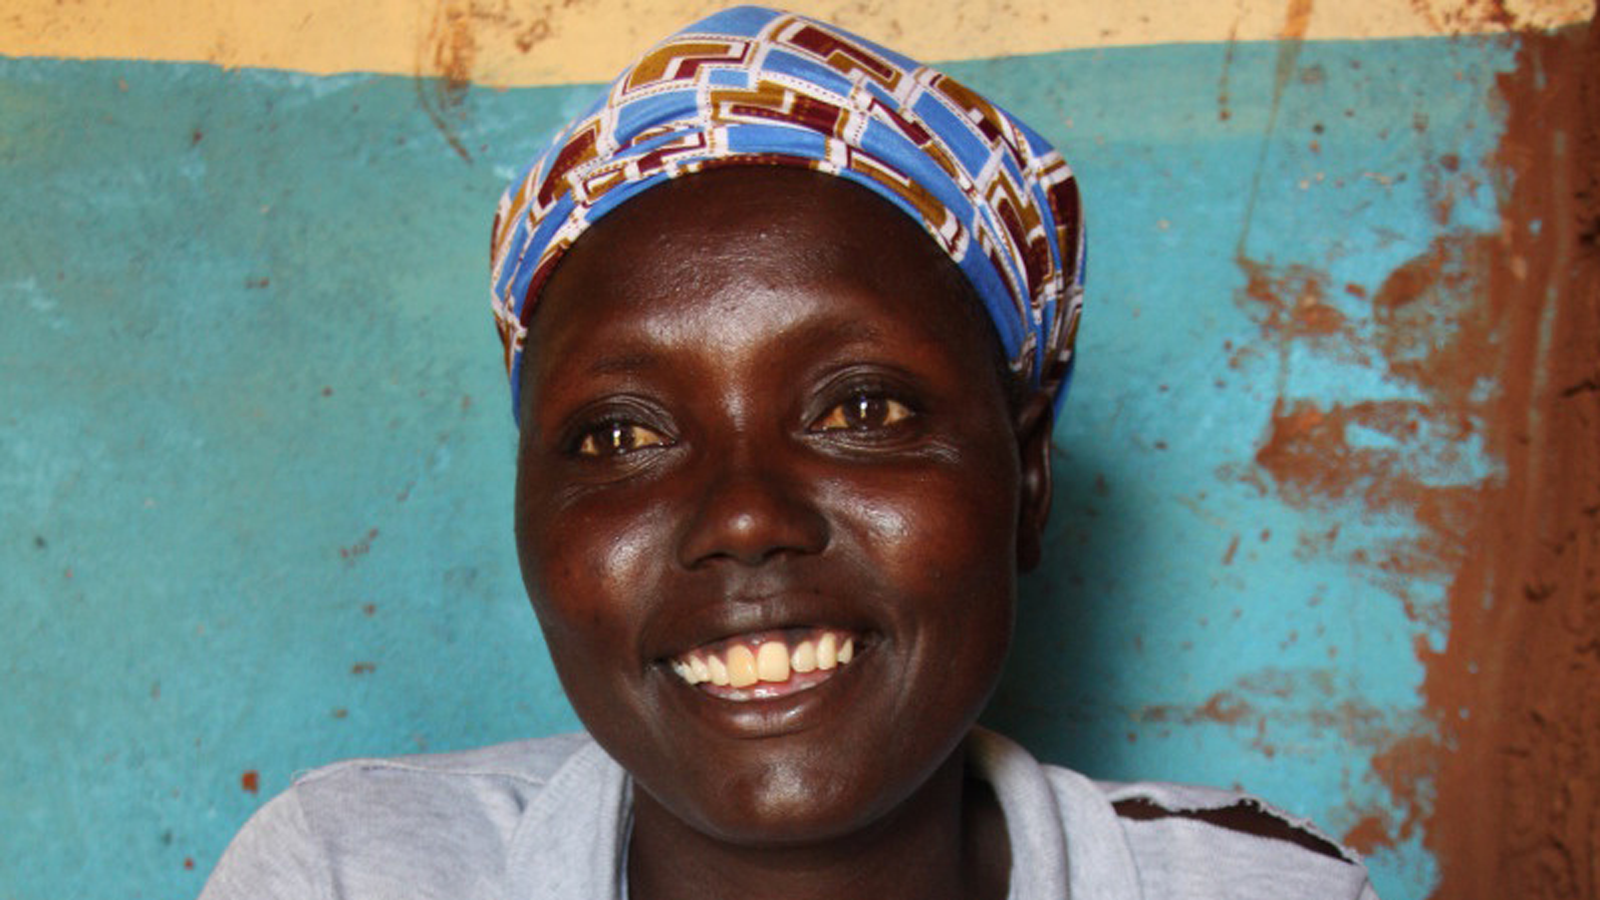 Christine sits and smiles at HI staff in Kenya